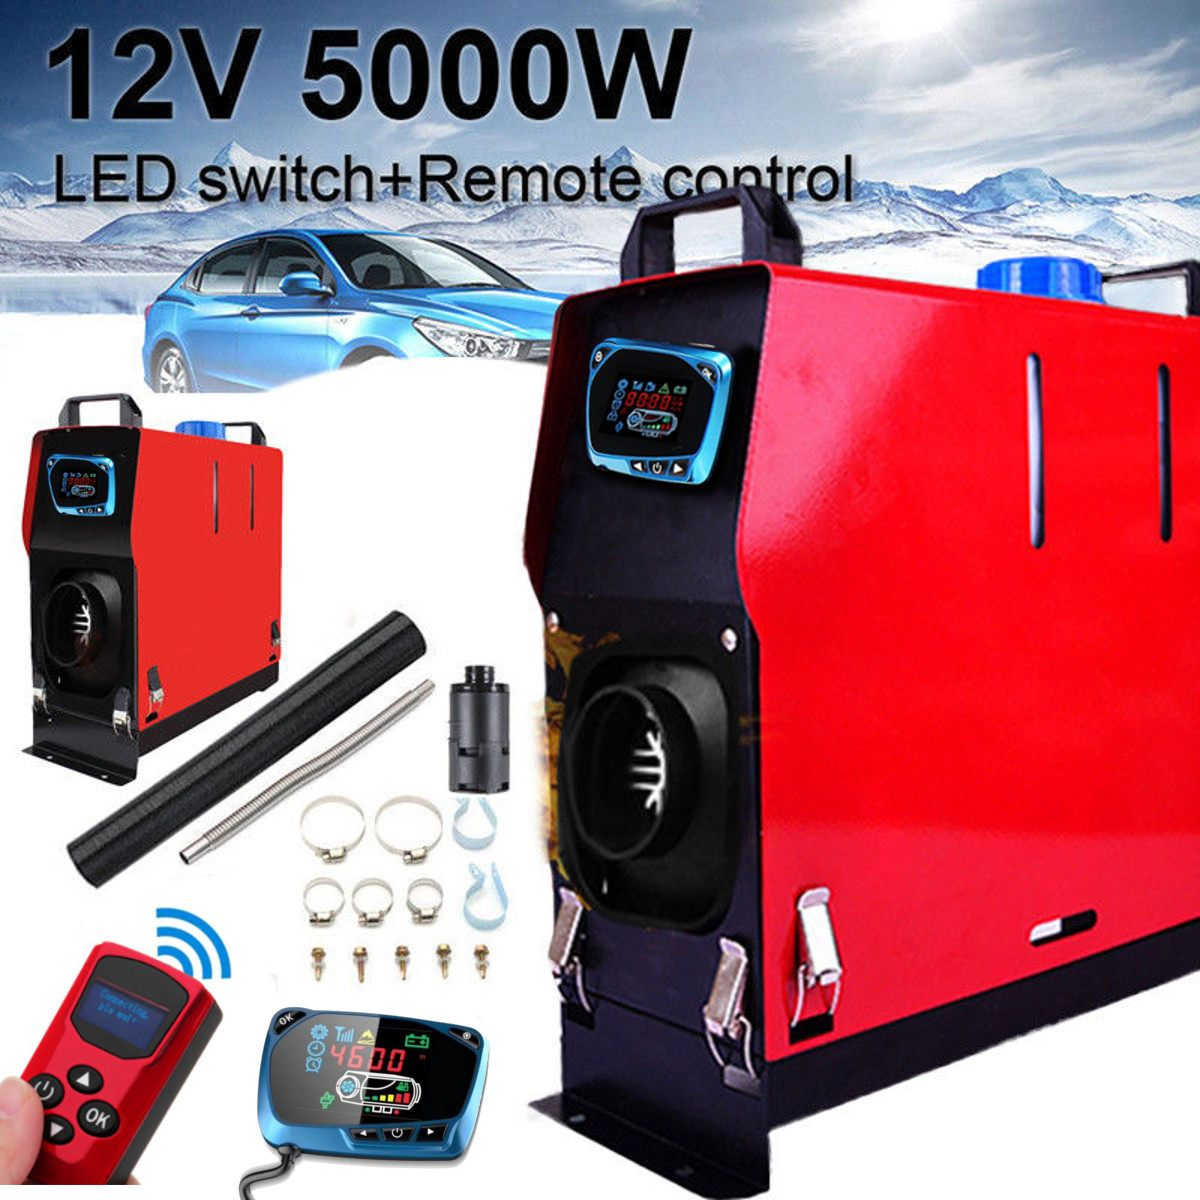 5000W Air diesels Heater 5KW 12V One Hole Car Heater For Trucks Motor Home Boats Bus +LCD key Switch + Silencer + Remote control